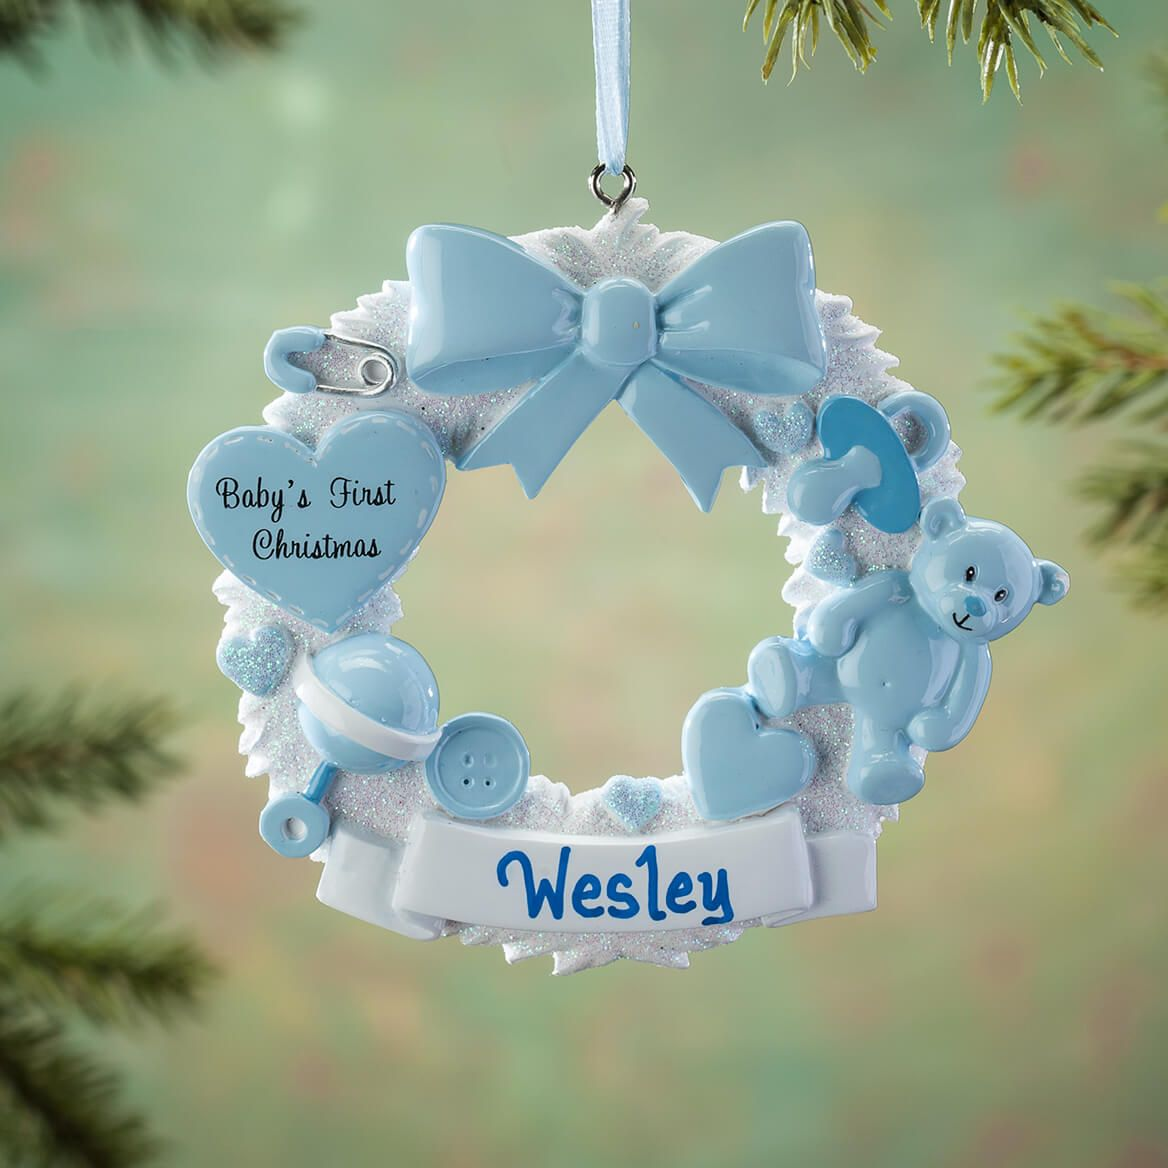 Personalized Baby's First Christmas Wreath Ornament-364882